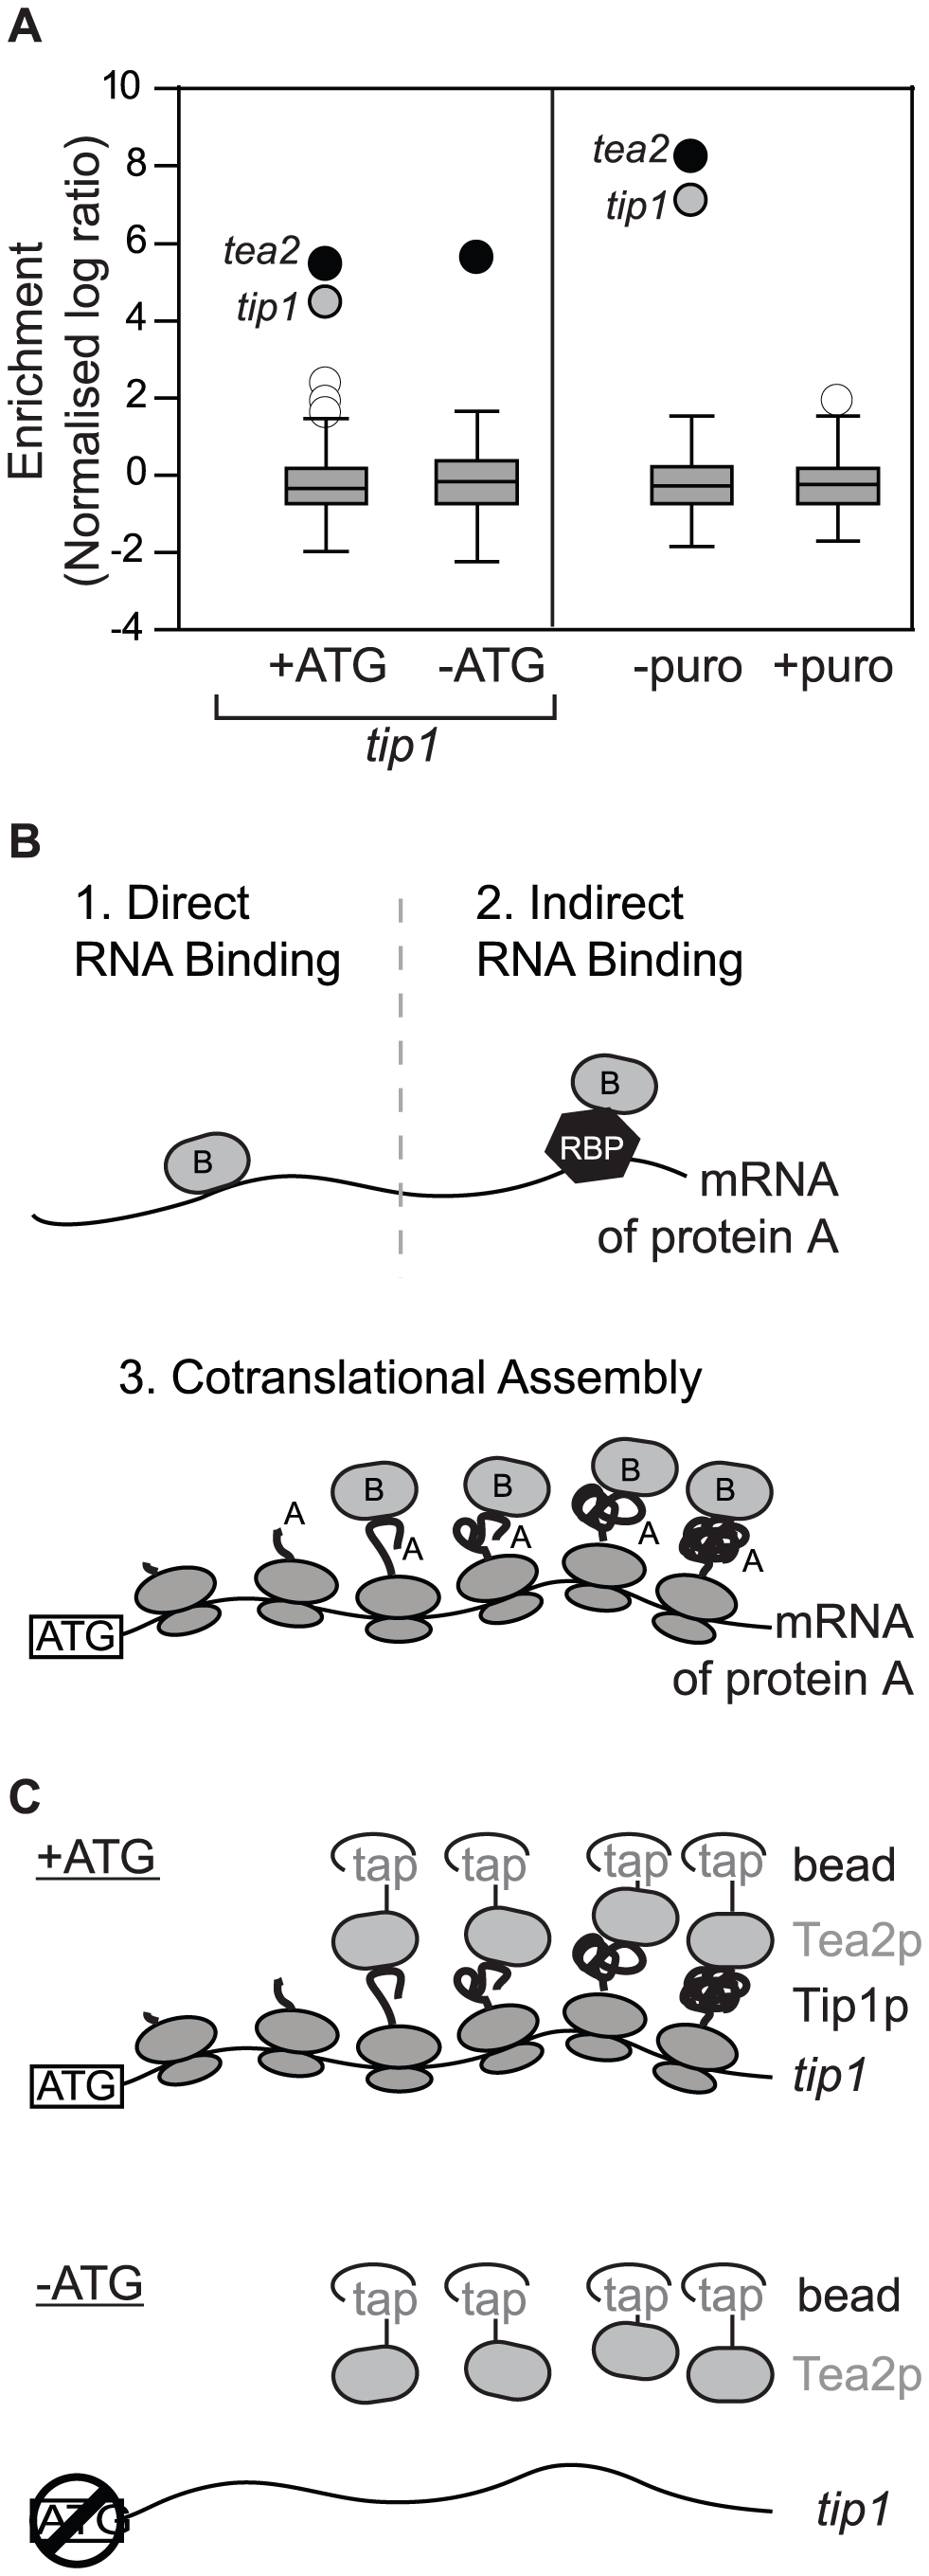 Cotranslational assembly of the Tea2p-Tip1p complex.